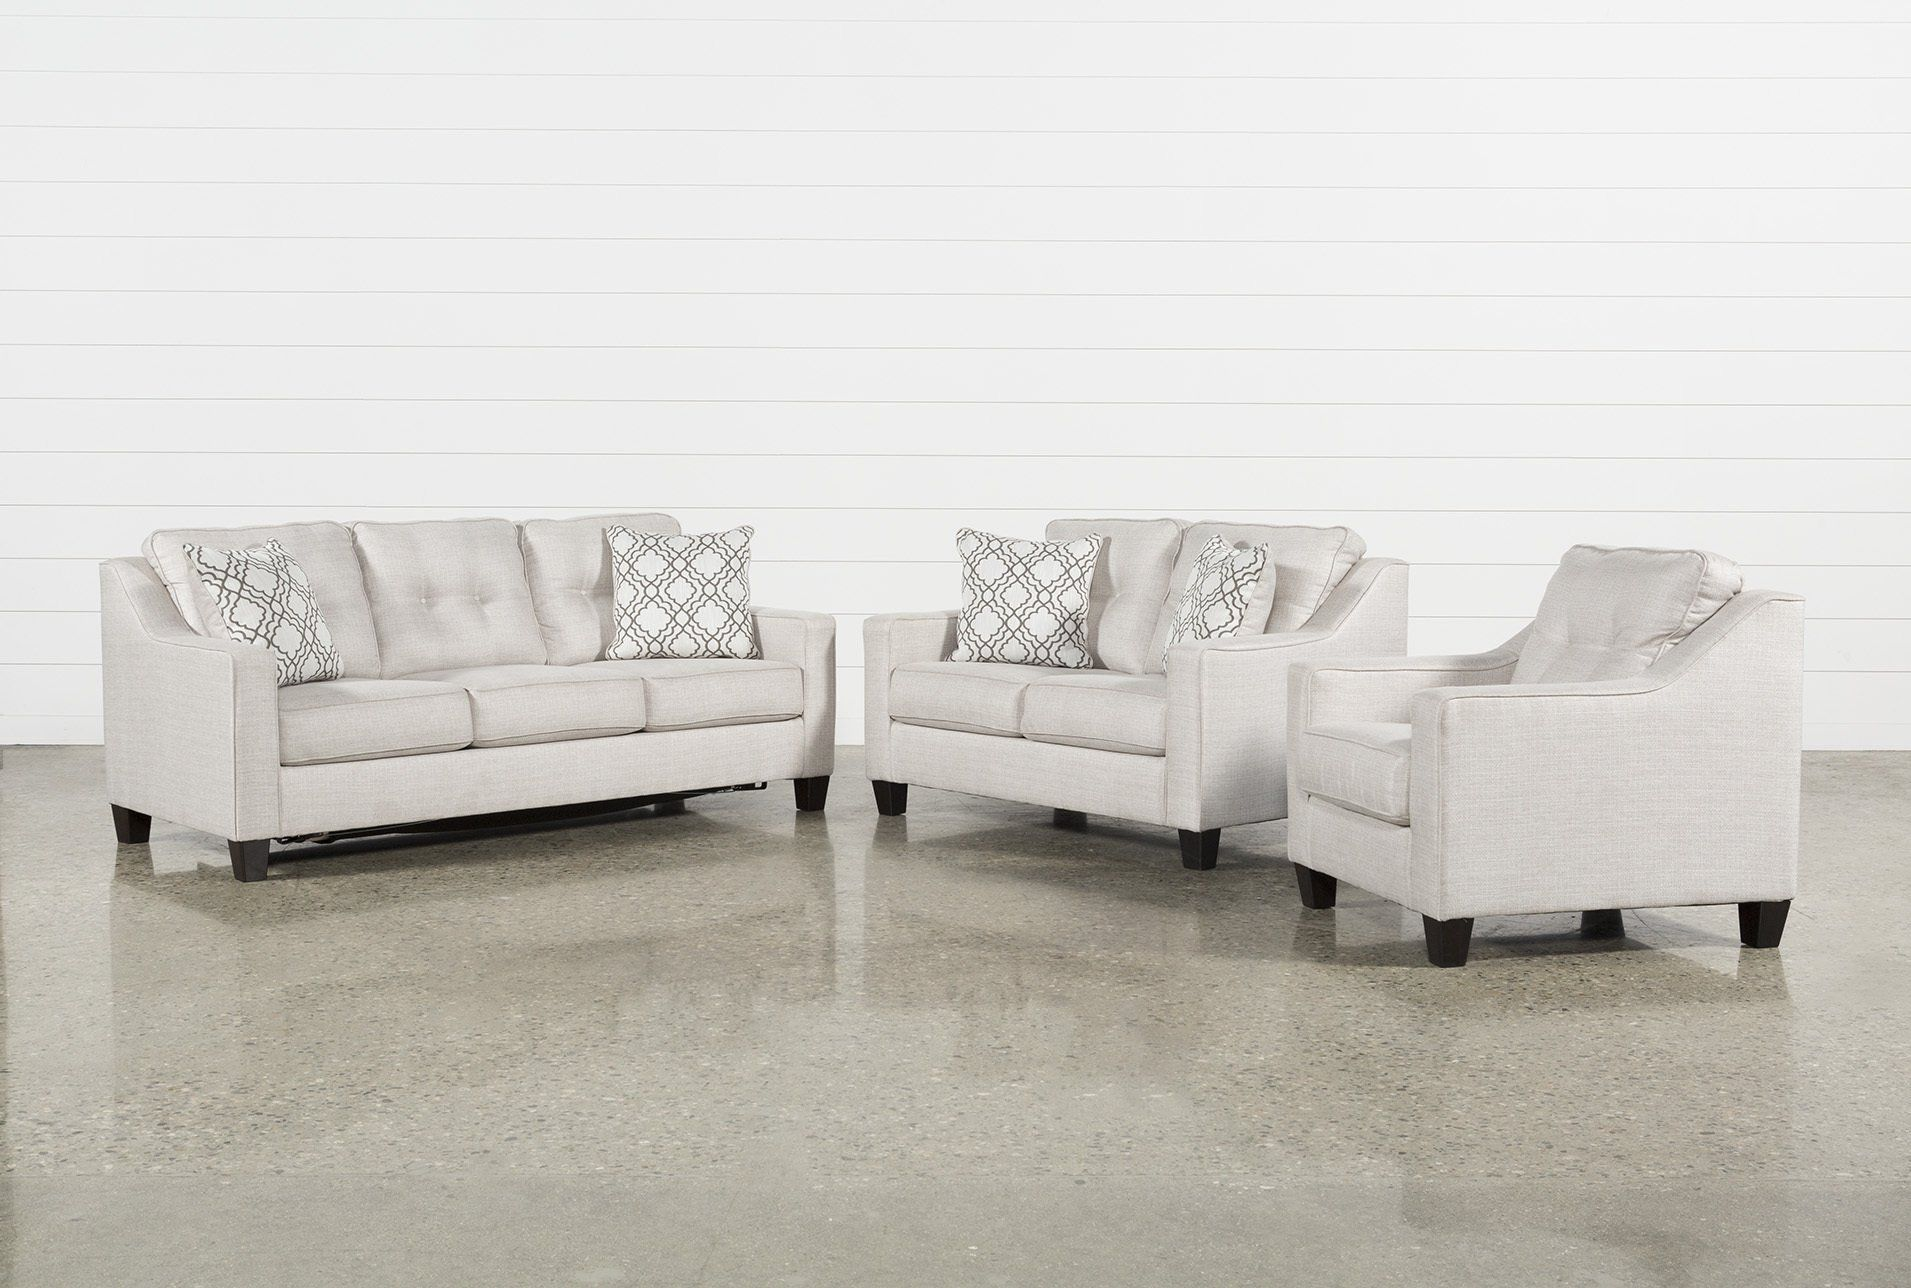 Linday Park 3 Piece Living Room Set With Queen Sleeper And Arm Chair ...